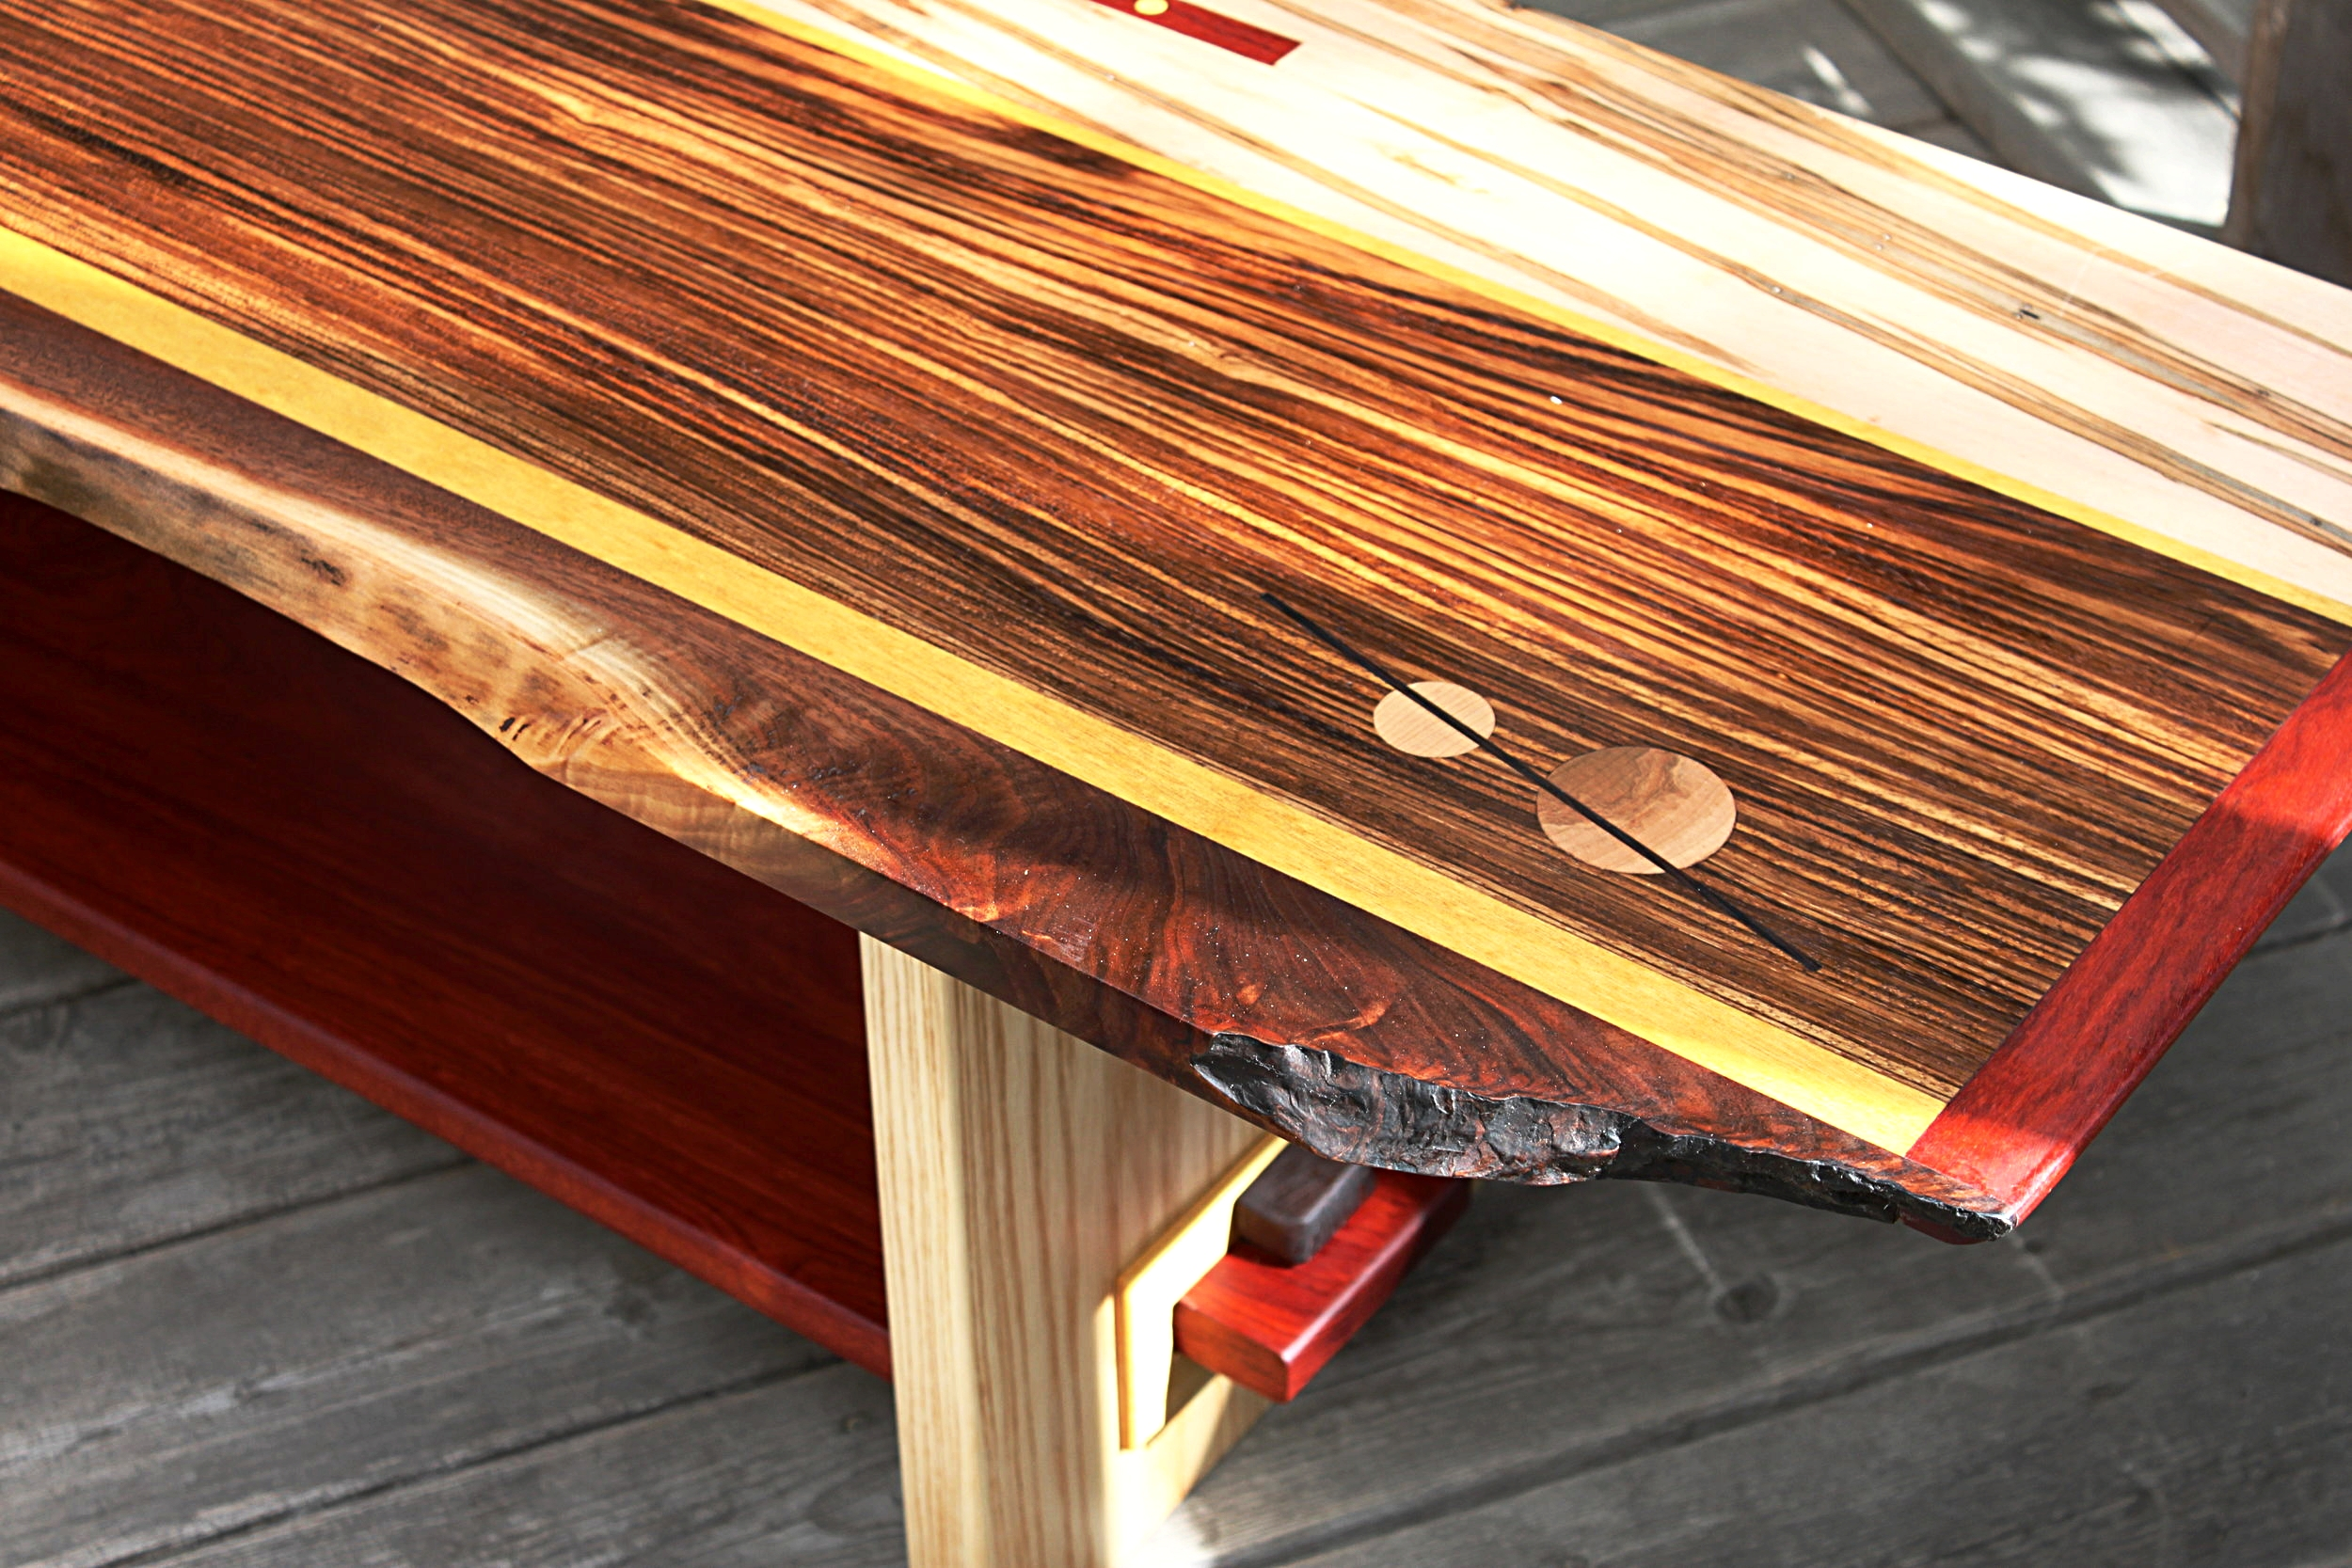 Zebrawood table detail